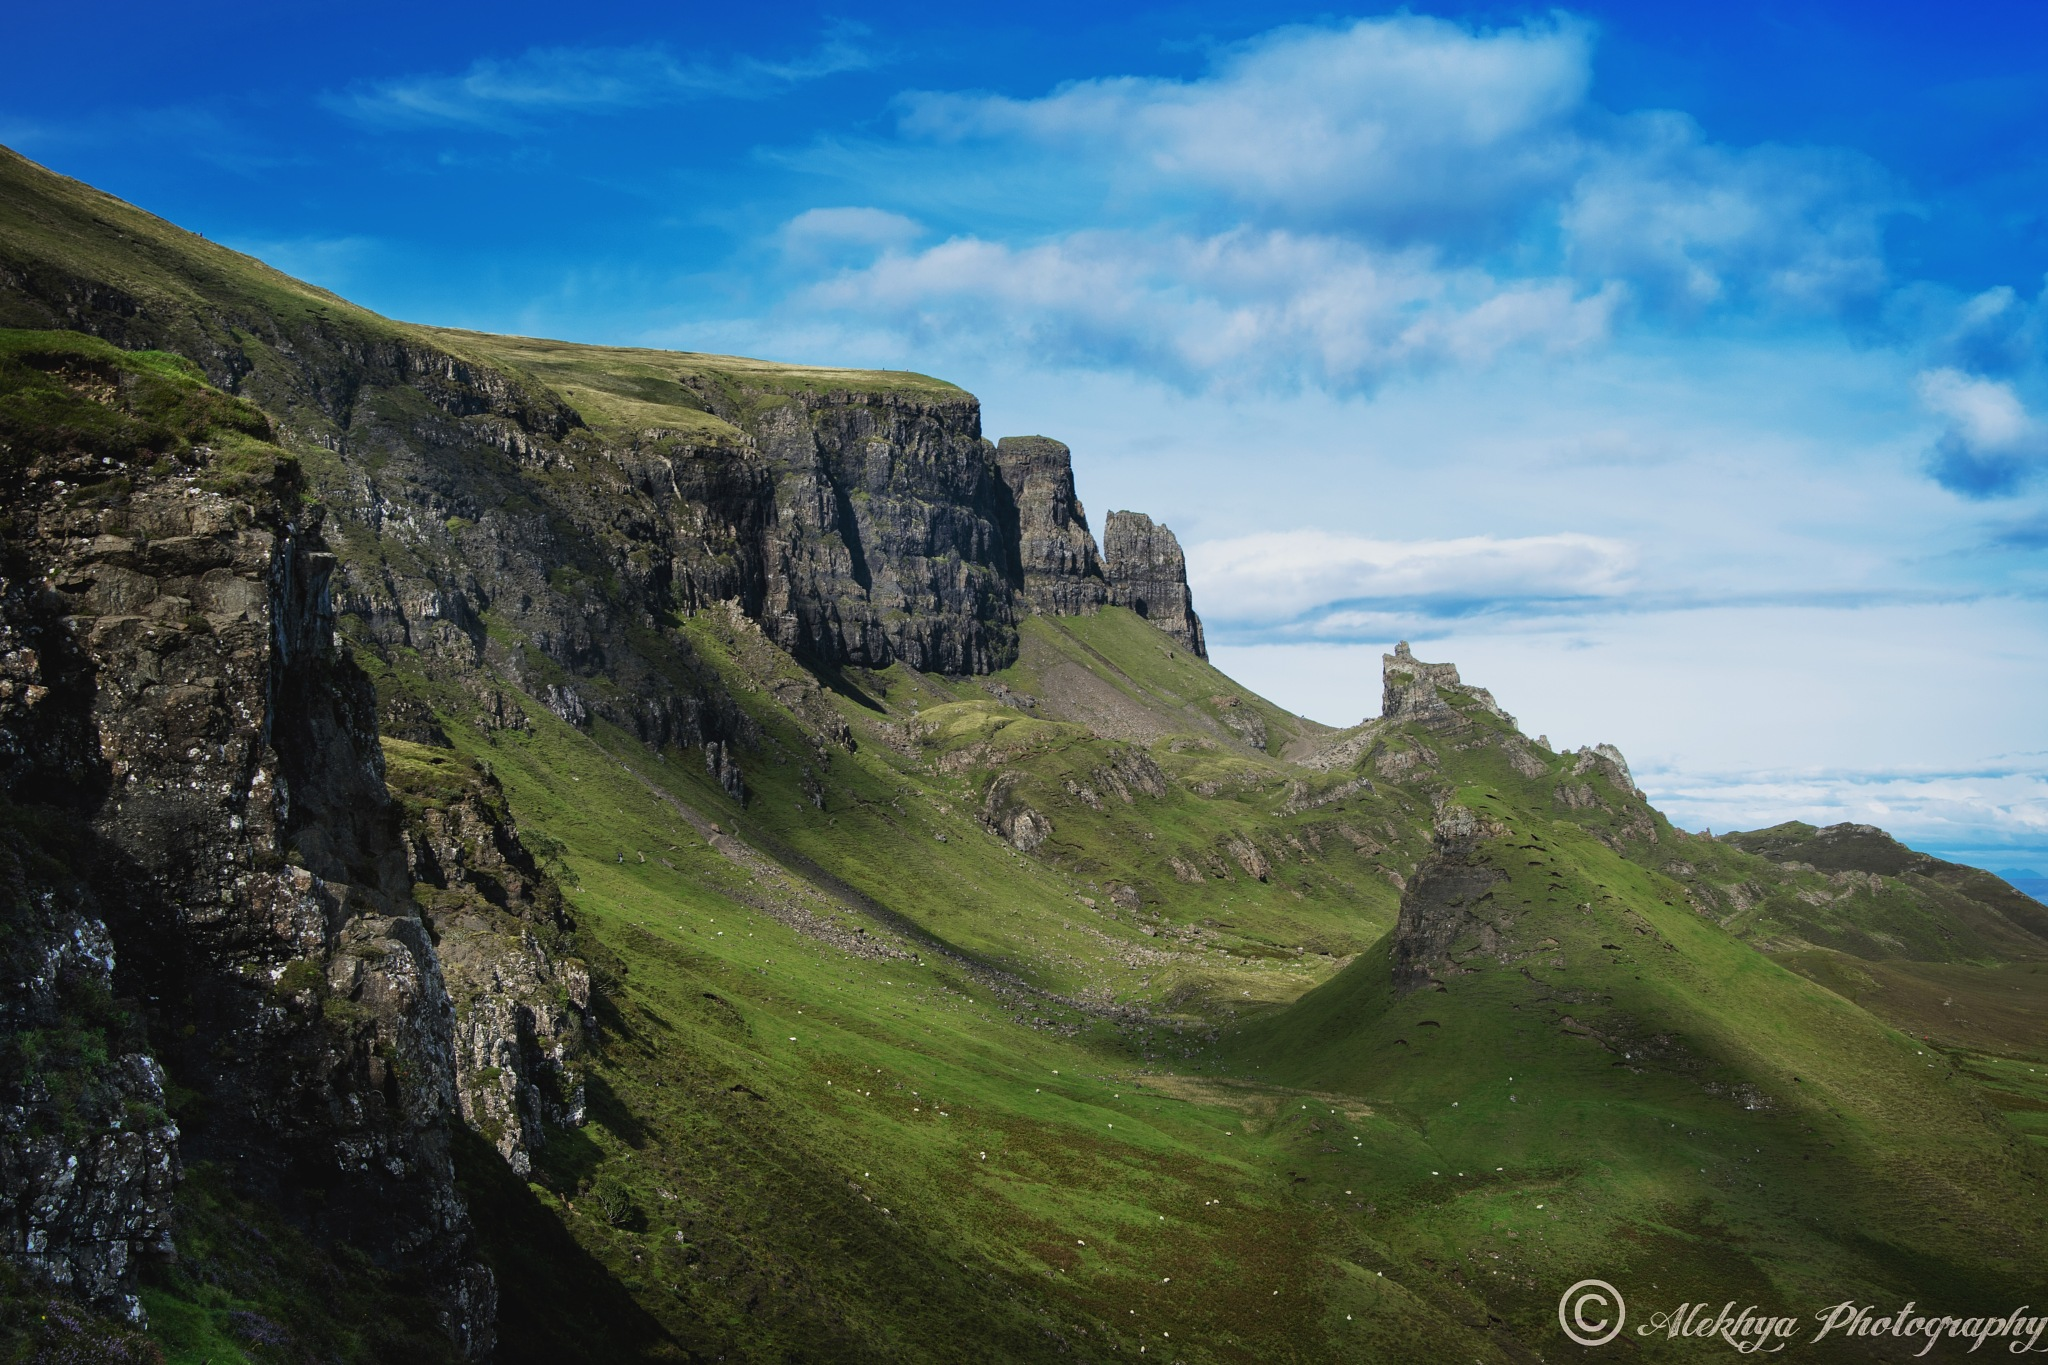 Standing Cliffs of Quiraing by Alekhya Photography